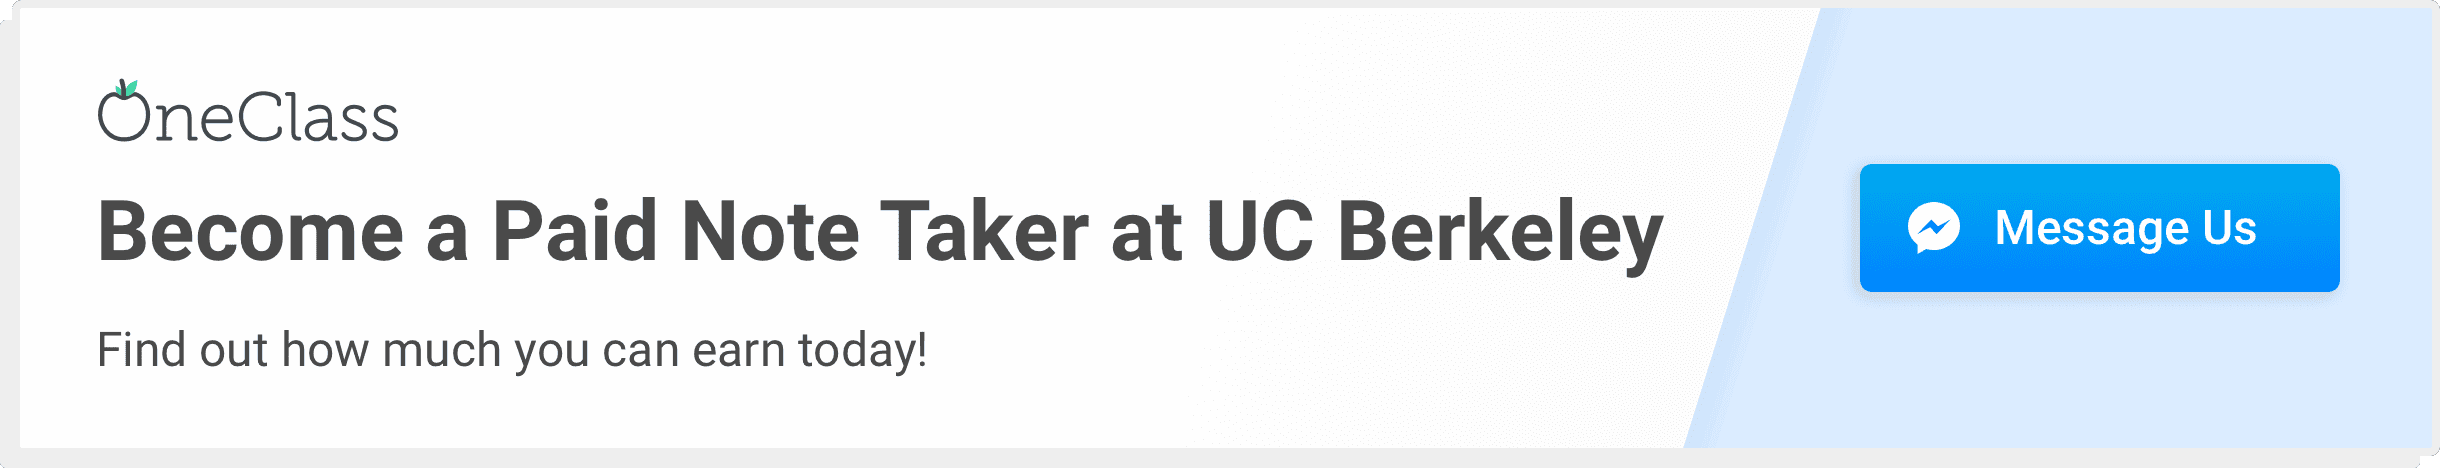 become a paid notetaker at UC Berkeley